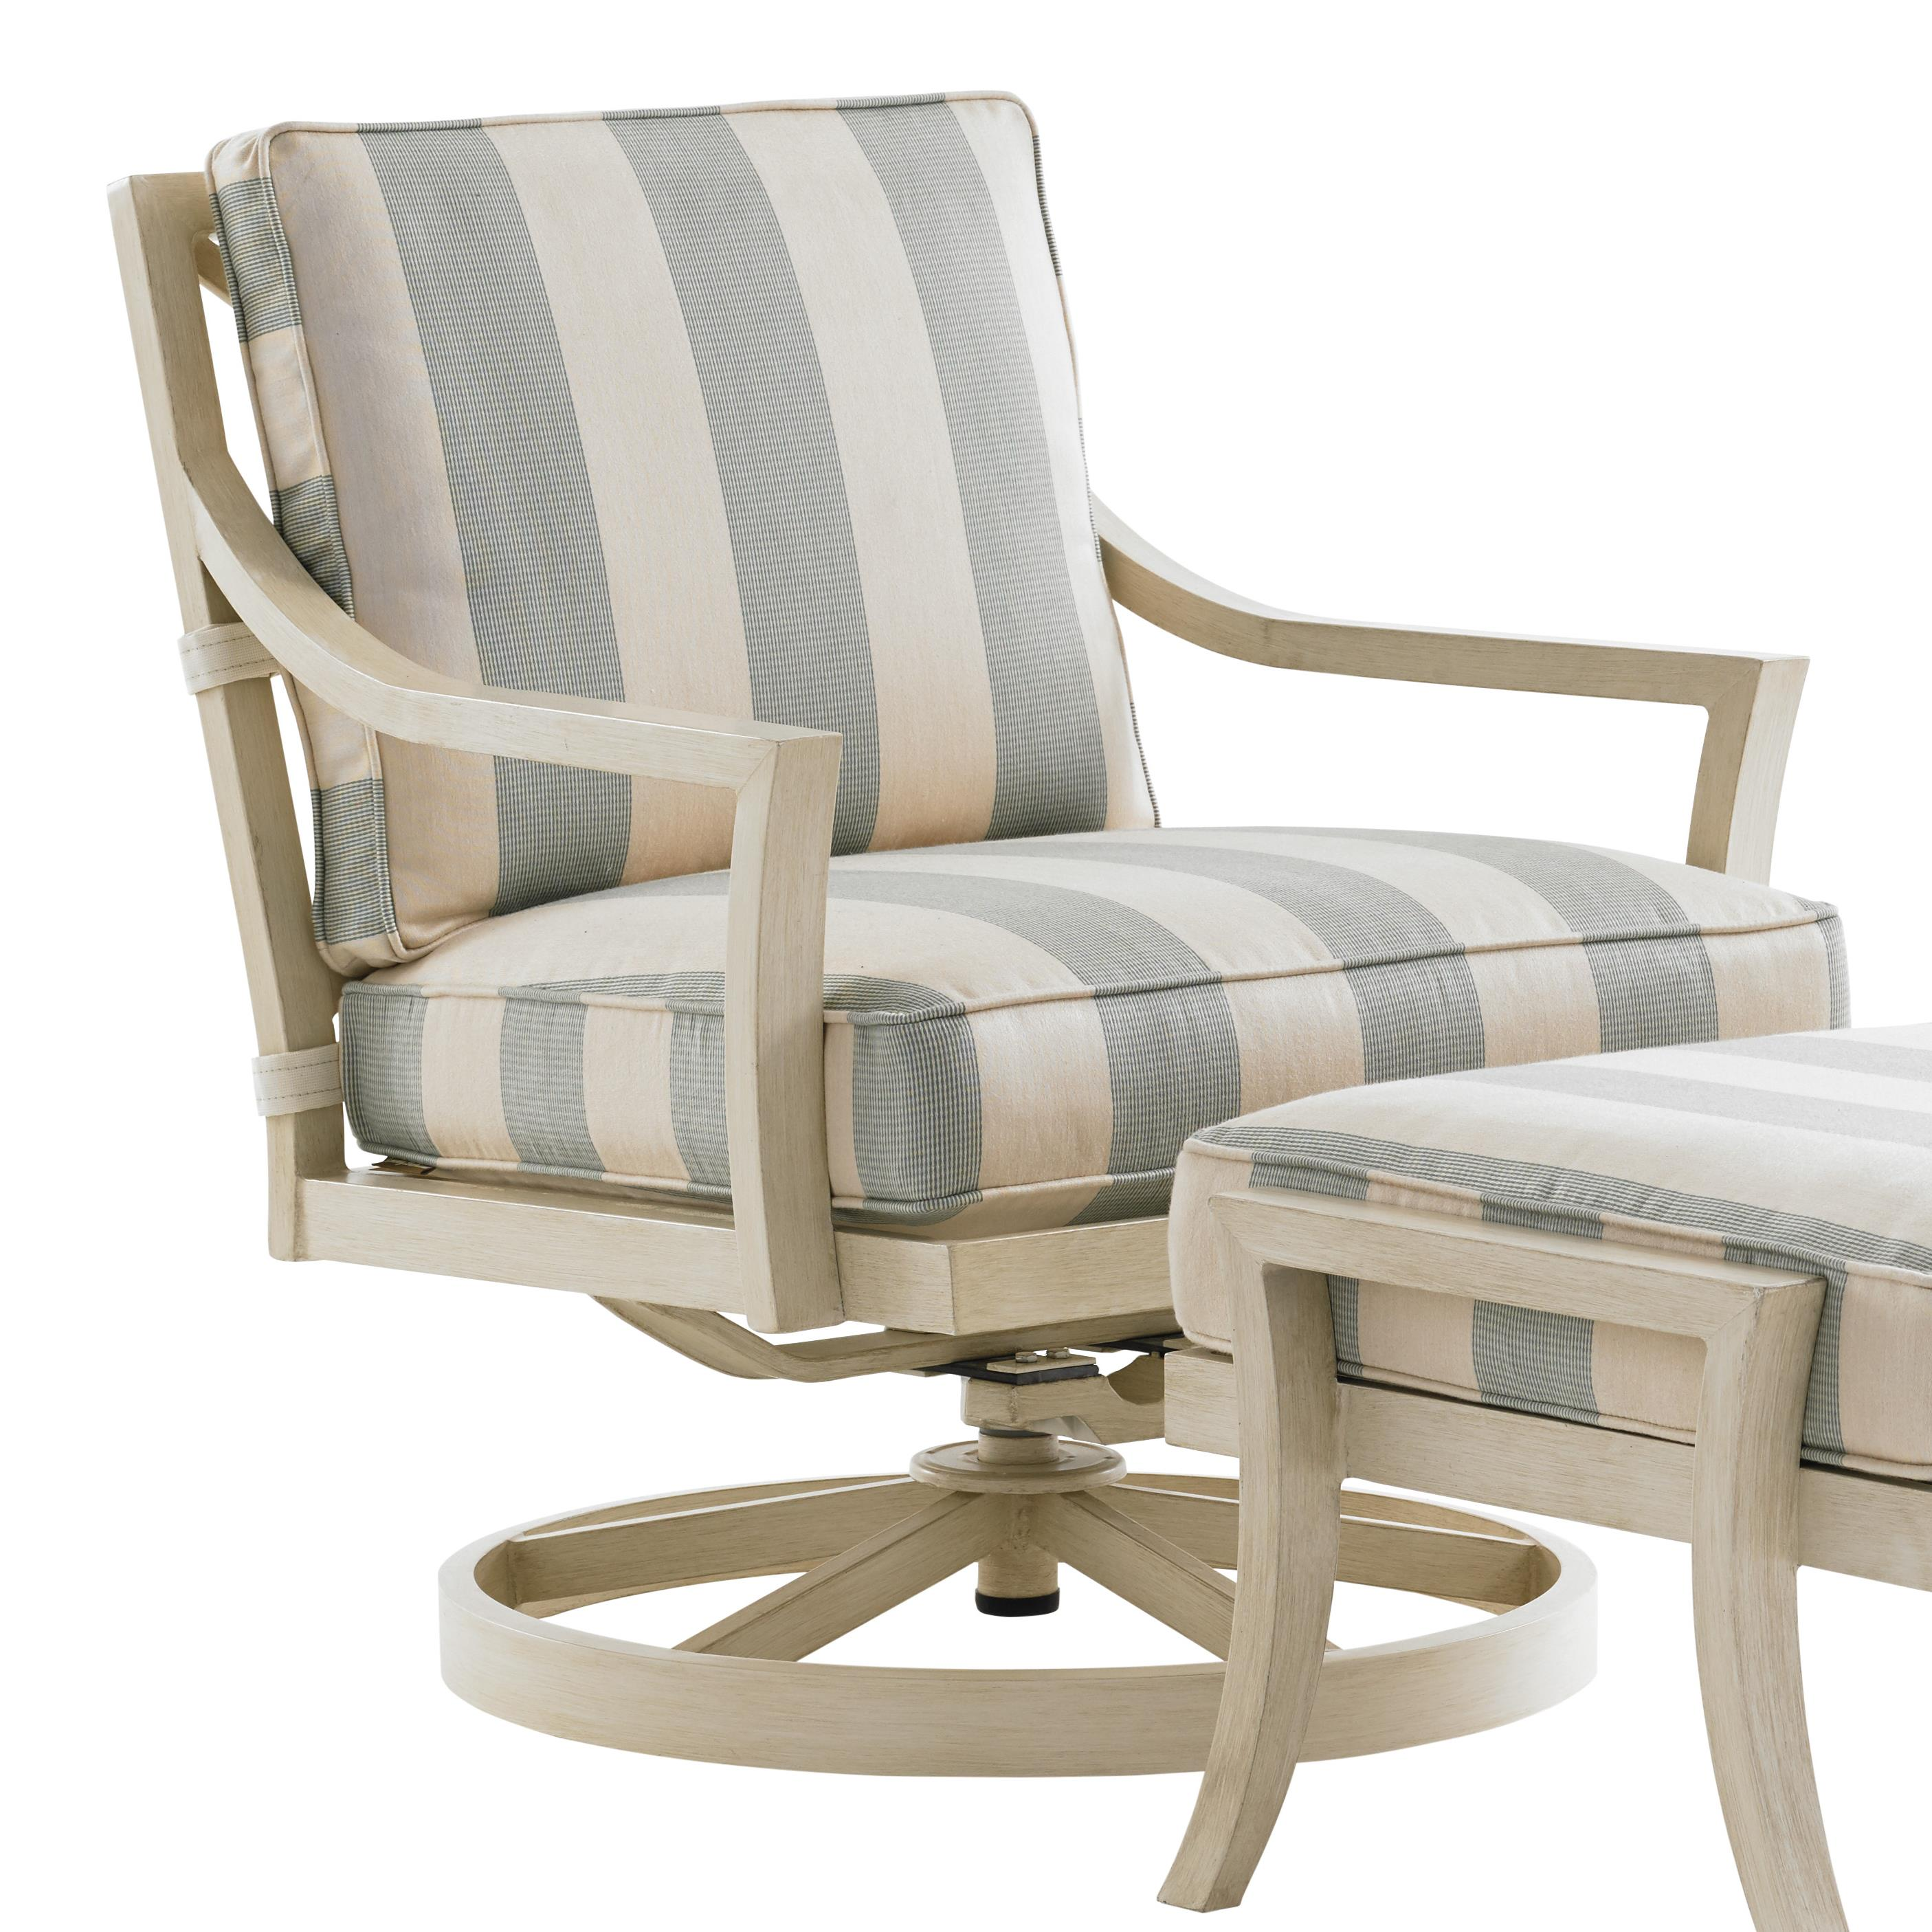 Tommy bahama outdoor living misty garden outdoor swivel for Fabric for outdoor chairs